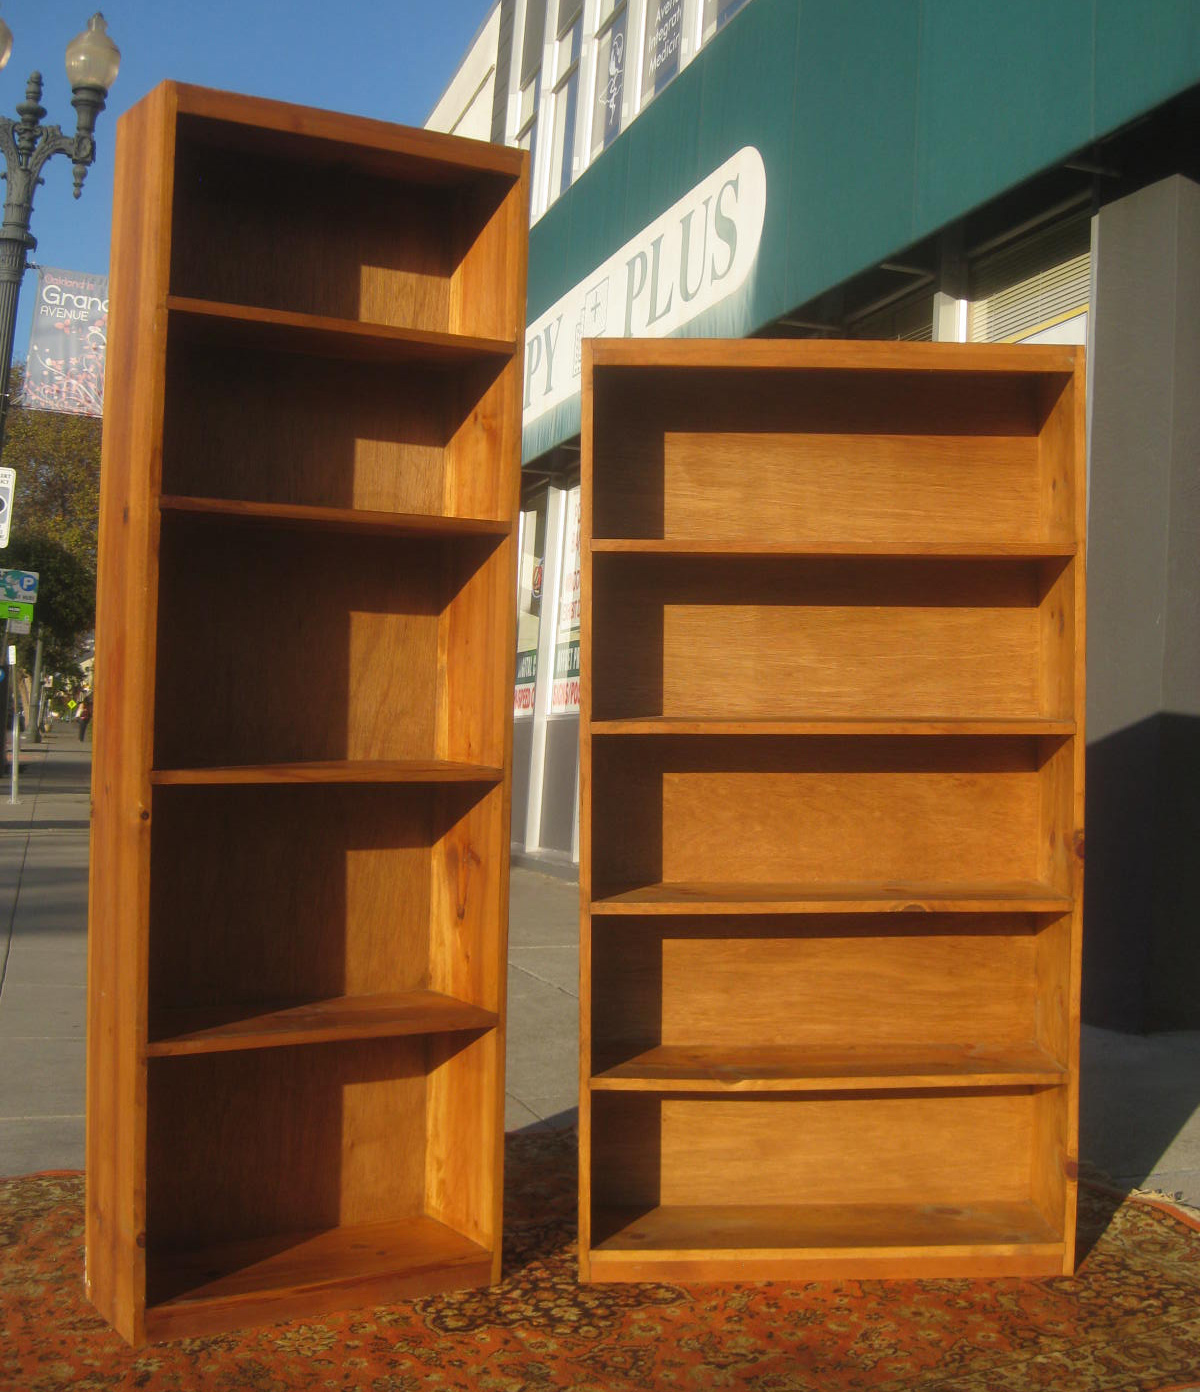 & COLLECTIBLES: SOLD  Pine Bookshelves  Tall $90. Short $80 1200 x 1392